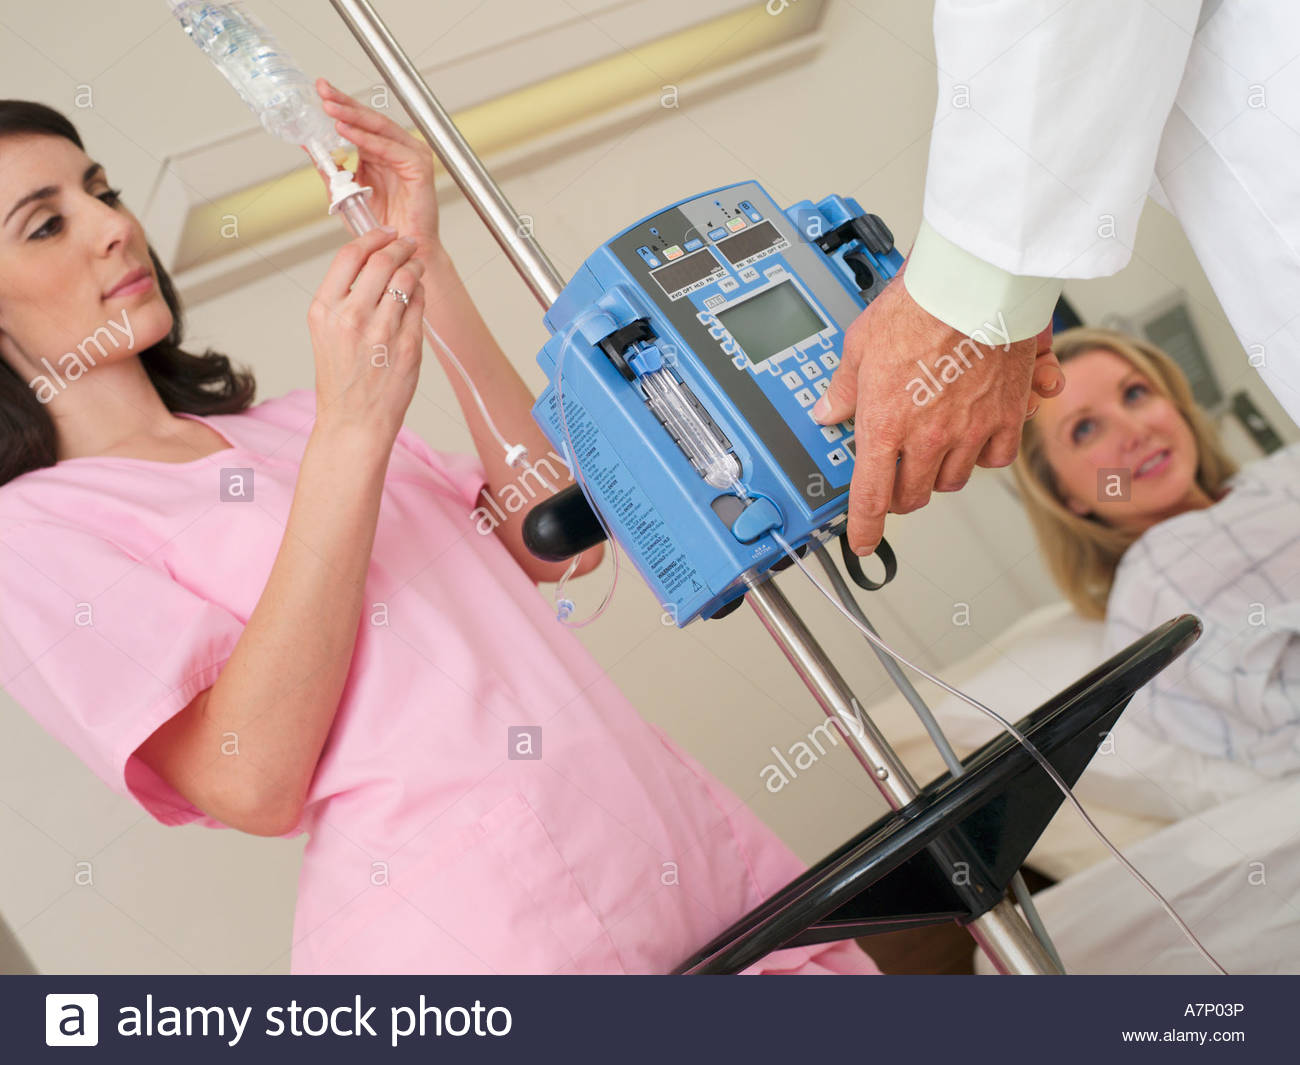 Nurse attending to female patient's IV drip in hospital ward, doctor operating control (tilt) - Stock Image